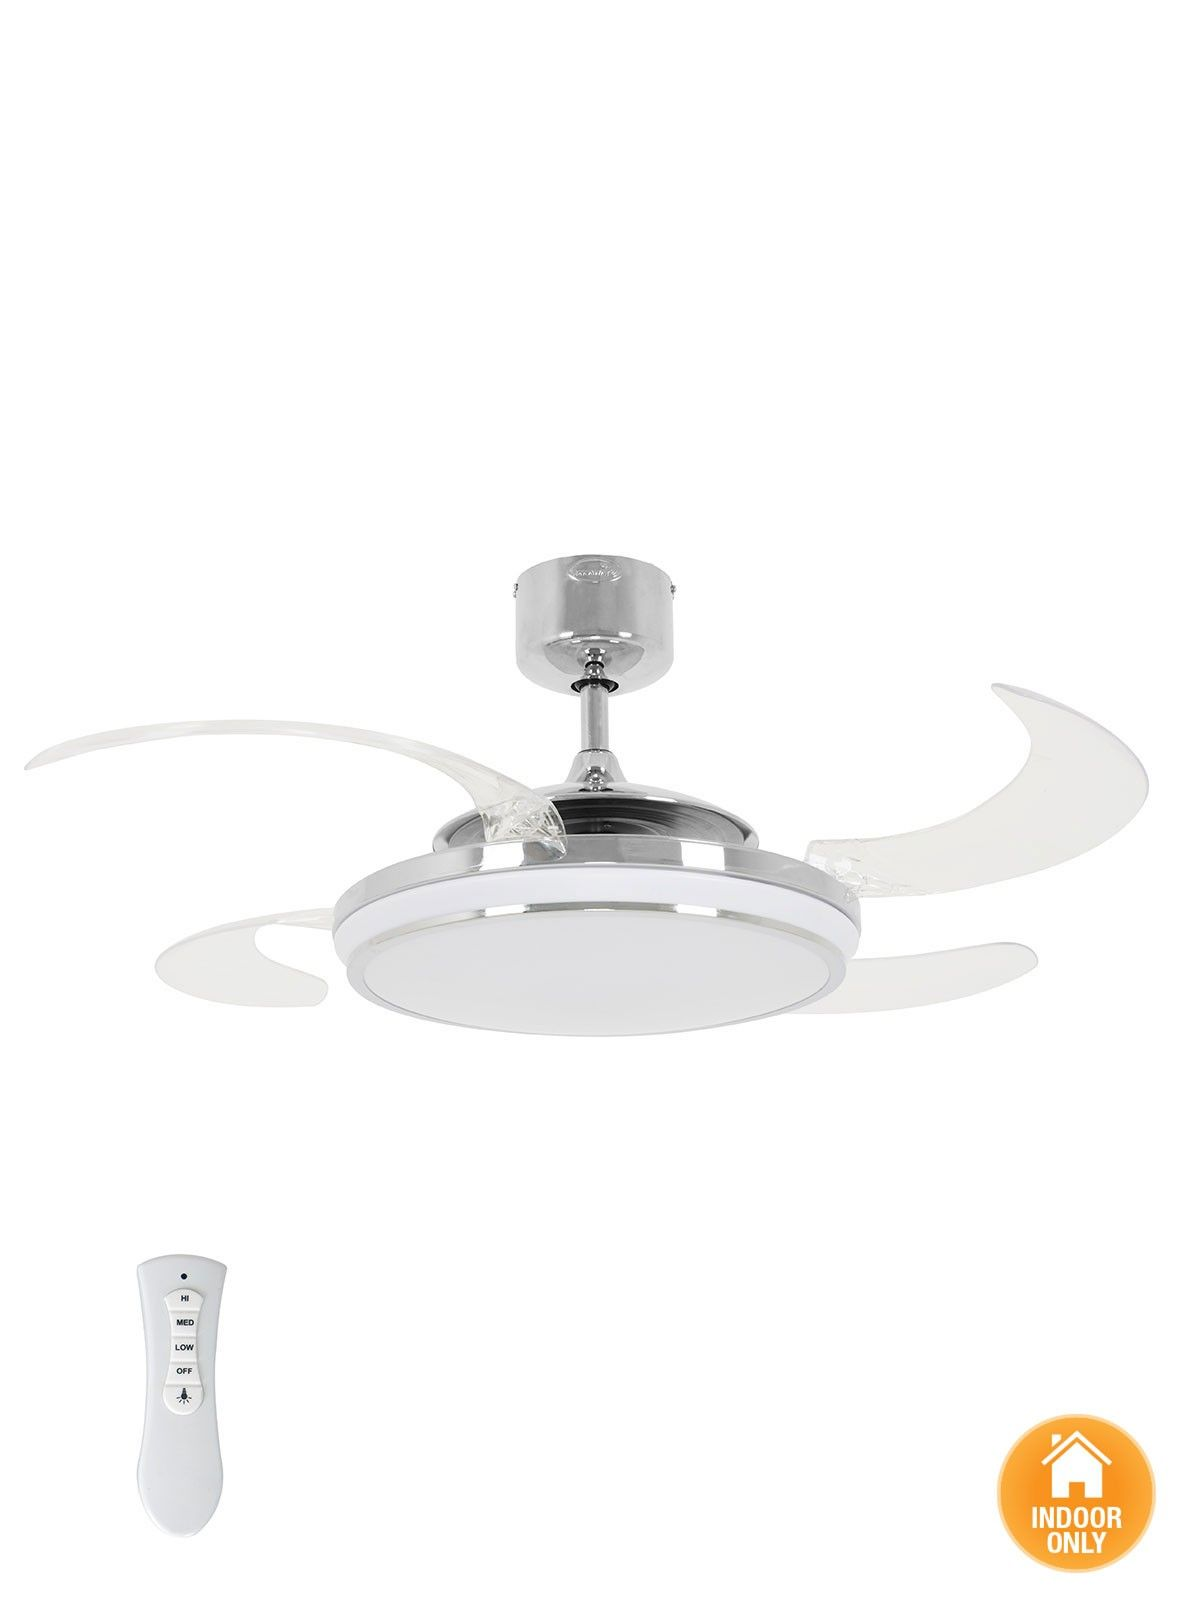 Fanaway Evo1 Prevail Chrome Ceiling Fan with Clear Retractable